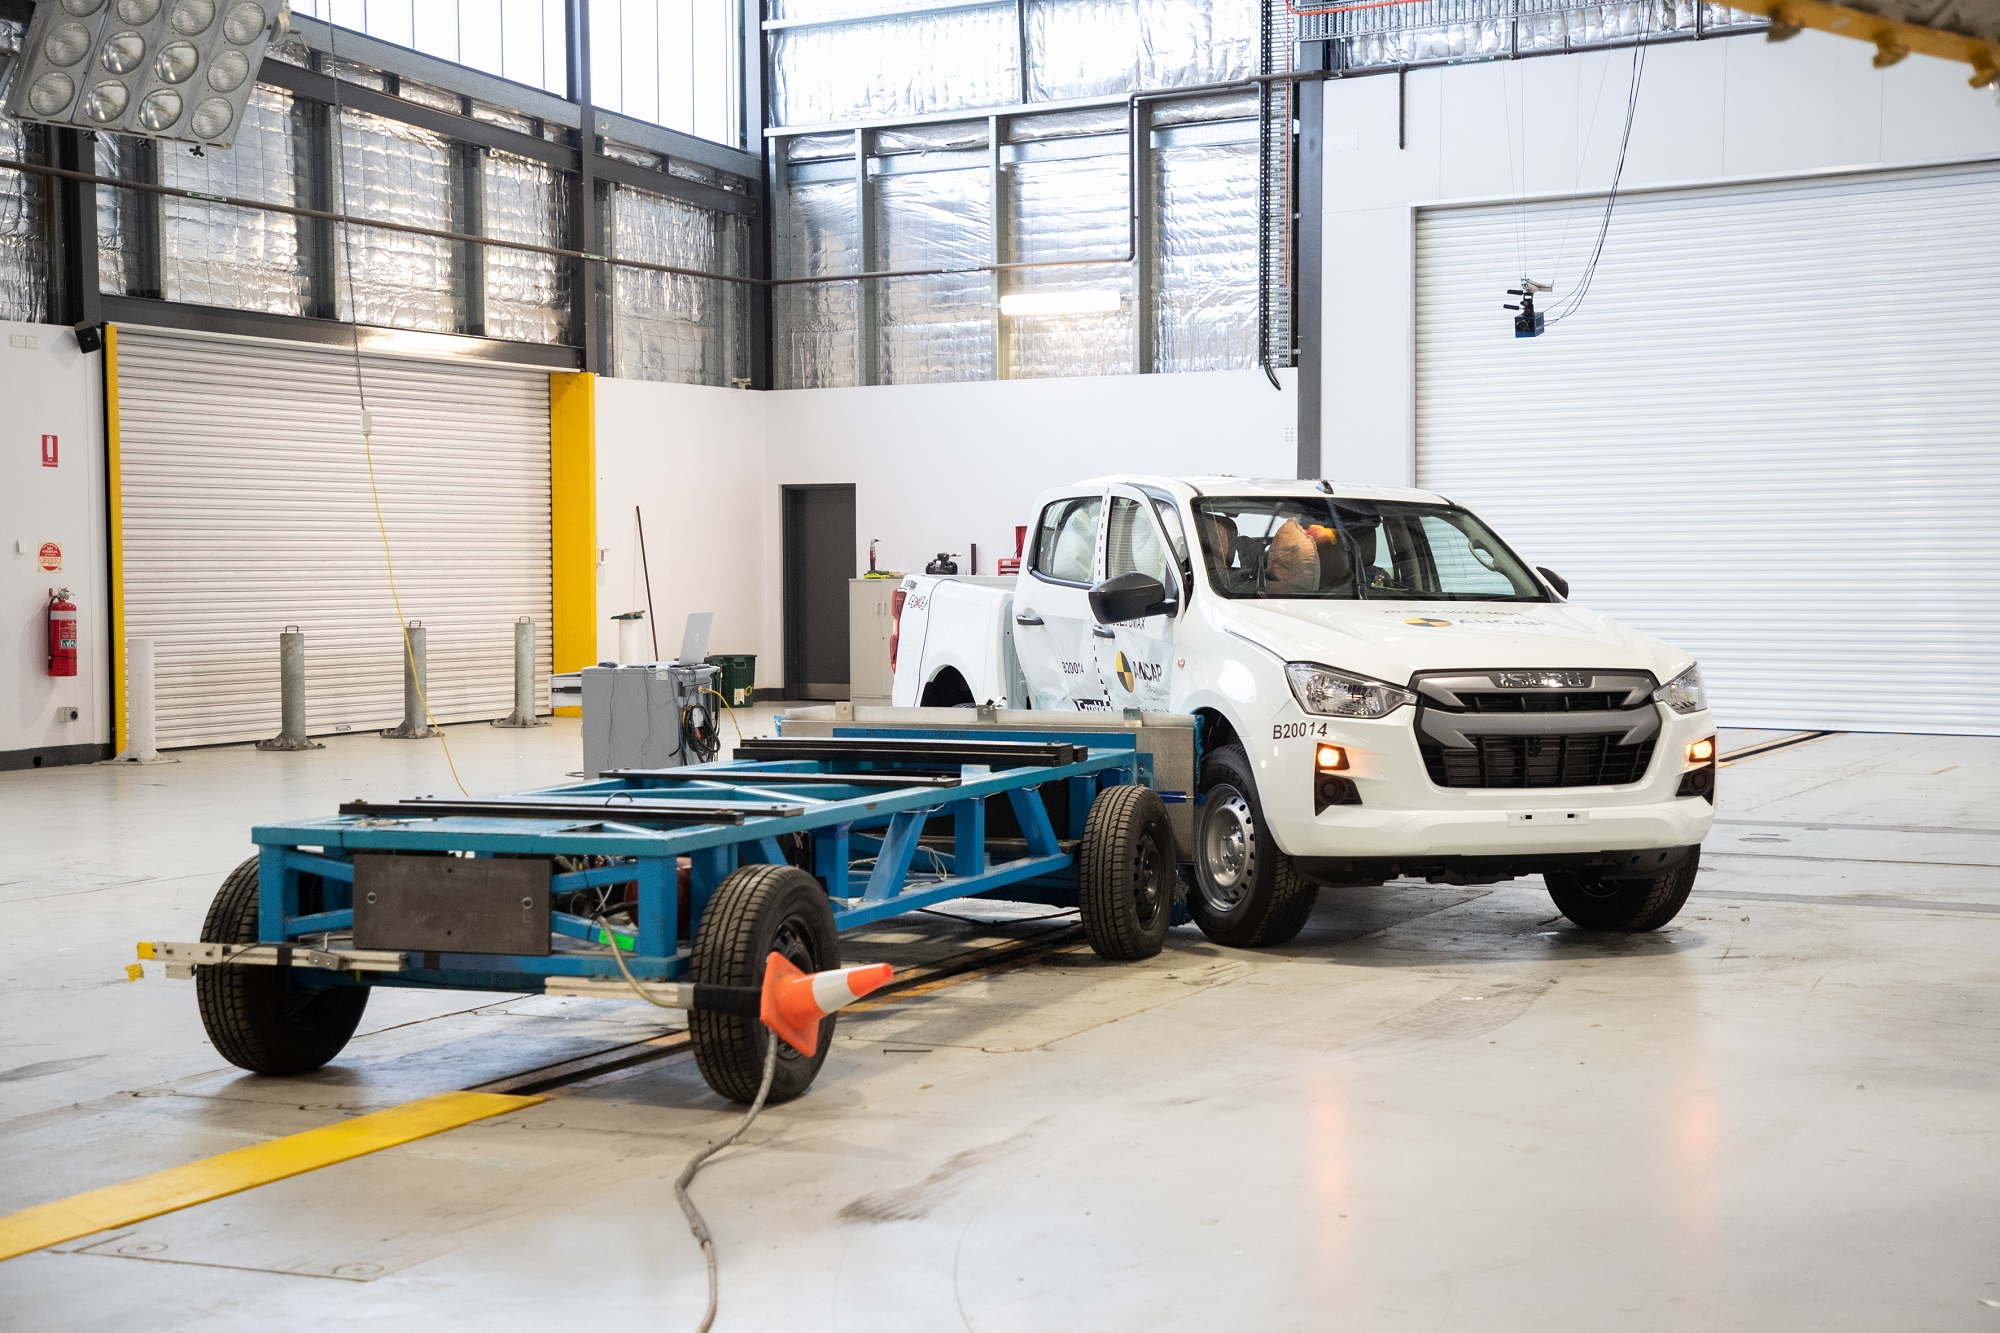 The All New '5 Star' Isuzu D Max: One Of The Safest Vehicles On